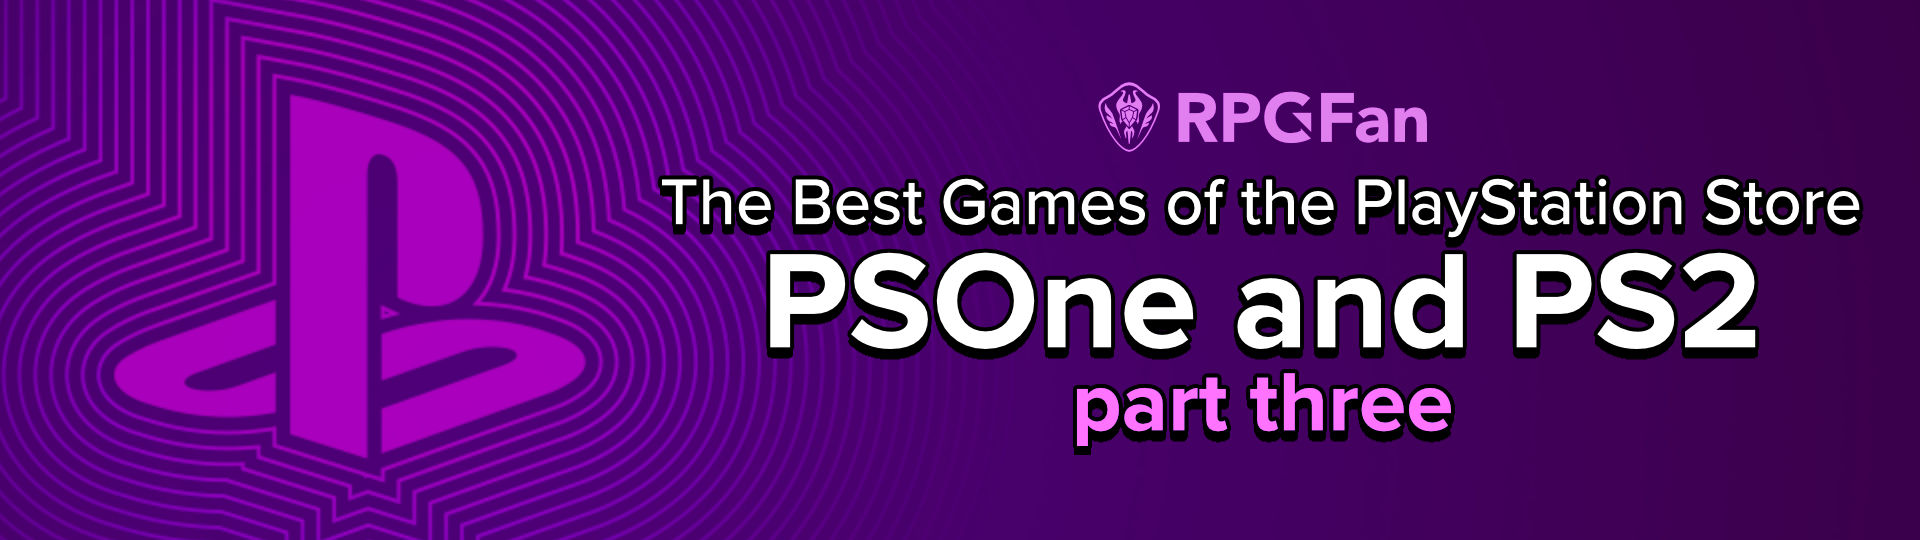 The Best Games of the PlayStation Store PSOne and PS2 Part Three